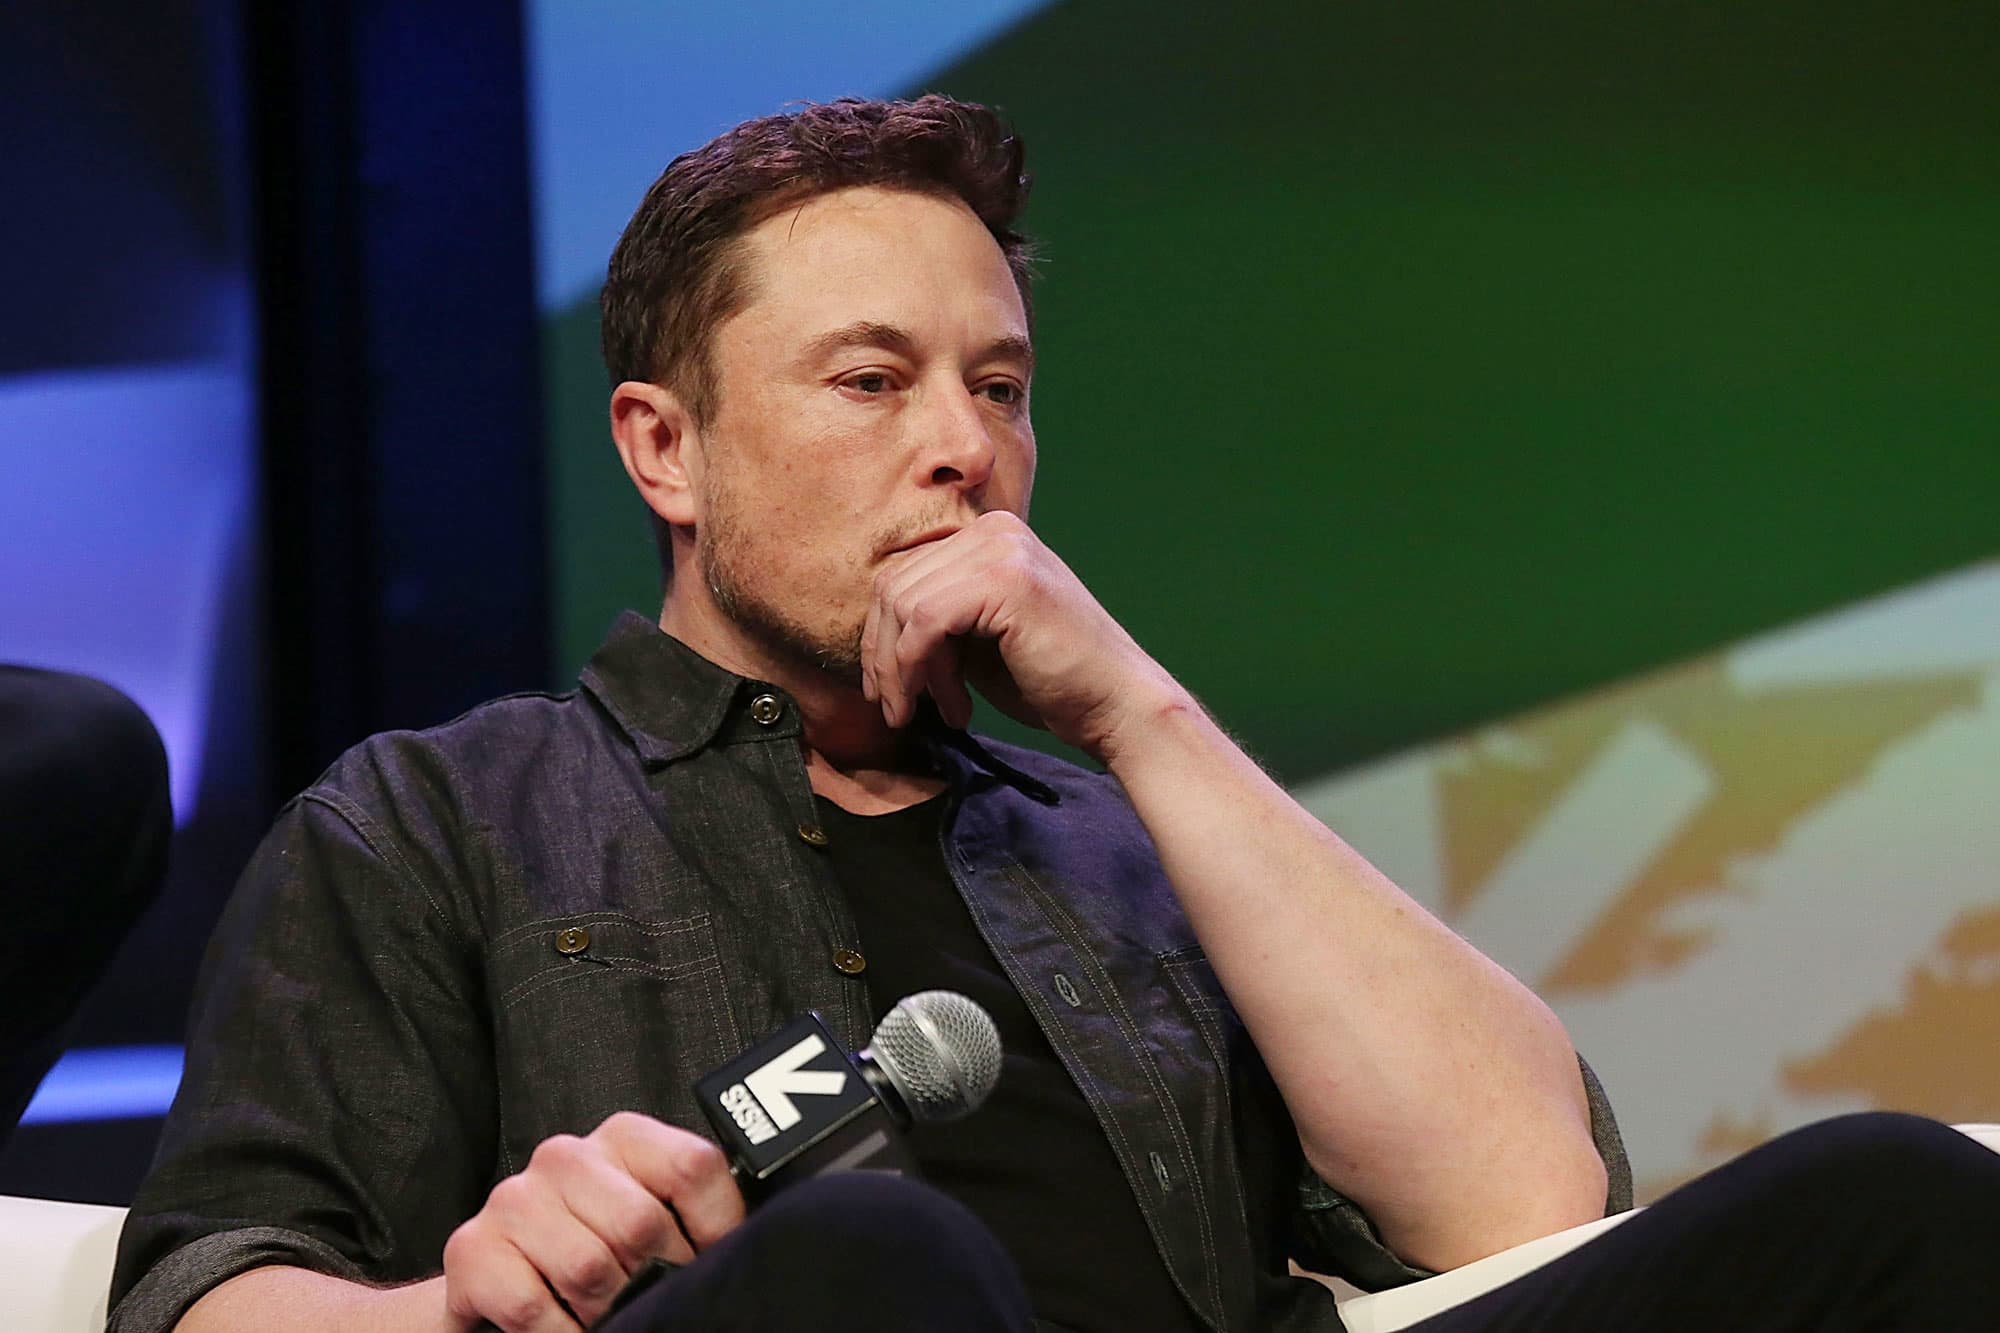 Read the email Elon Musk sent to Tesla employees explaining the need for job cuts